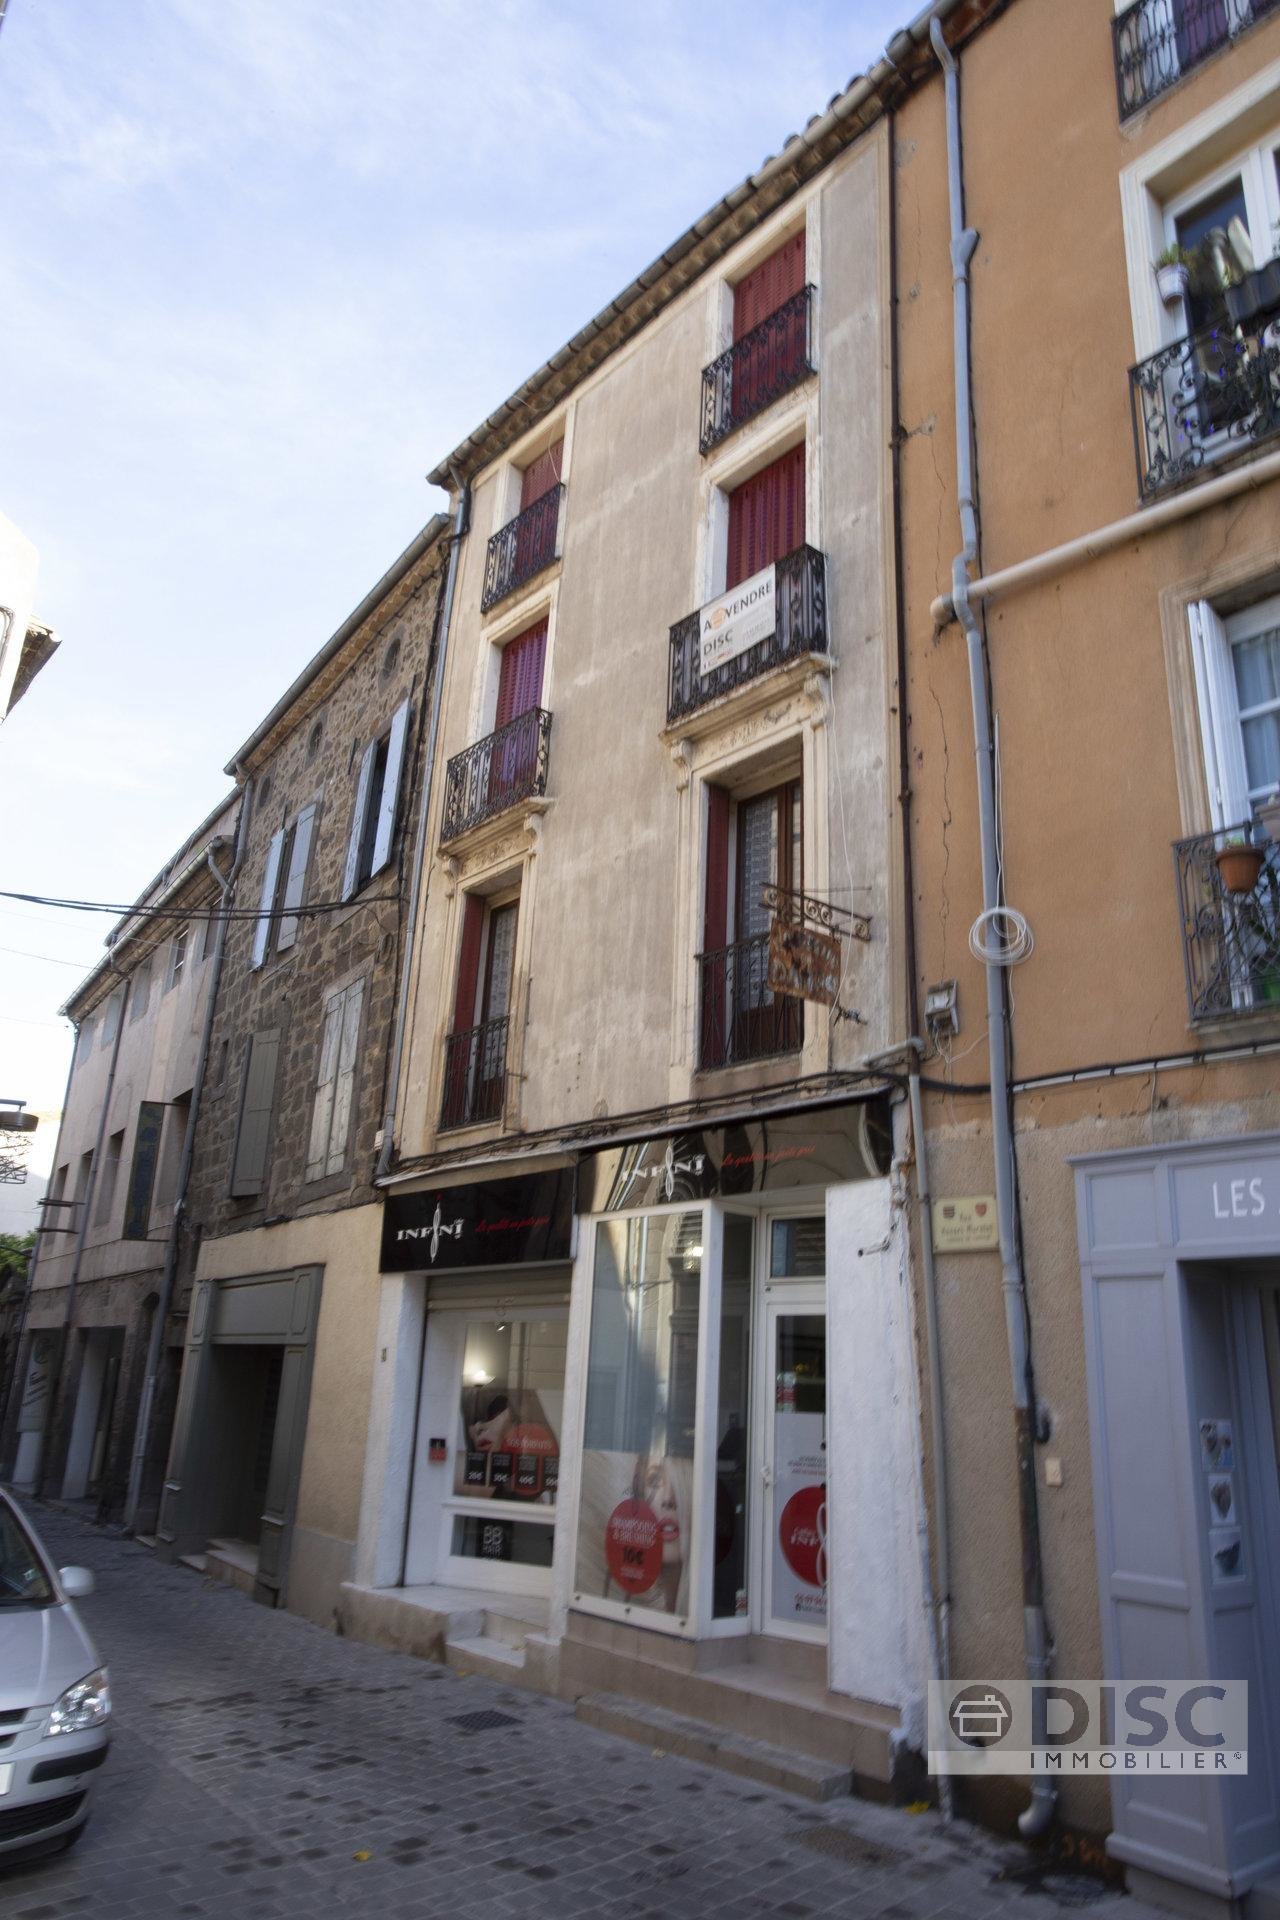 Nice apartment in the old center of Agde with view on the river and square